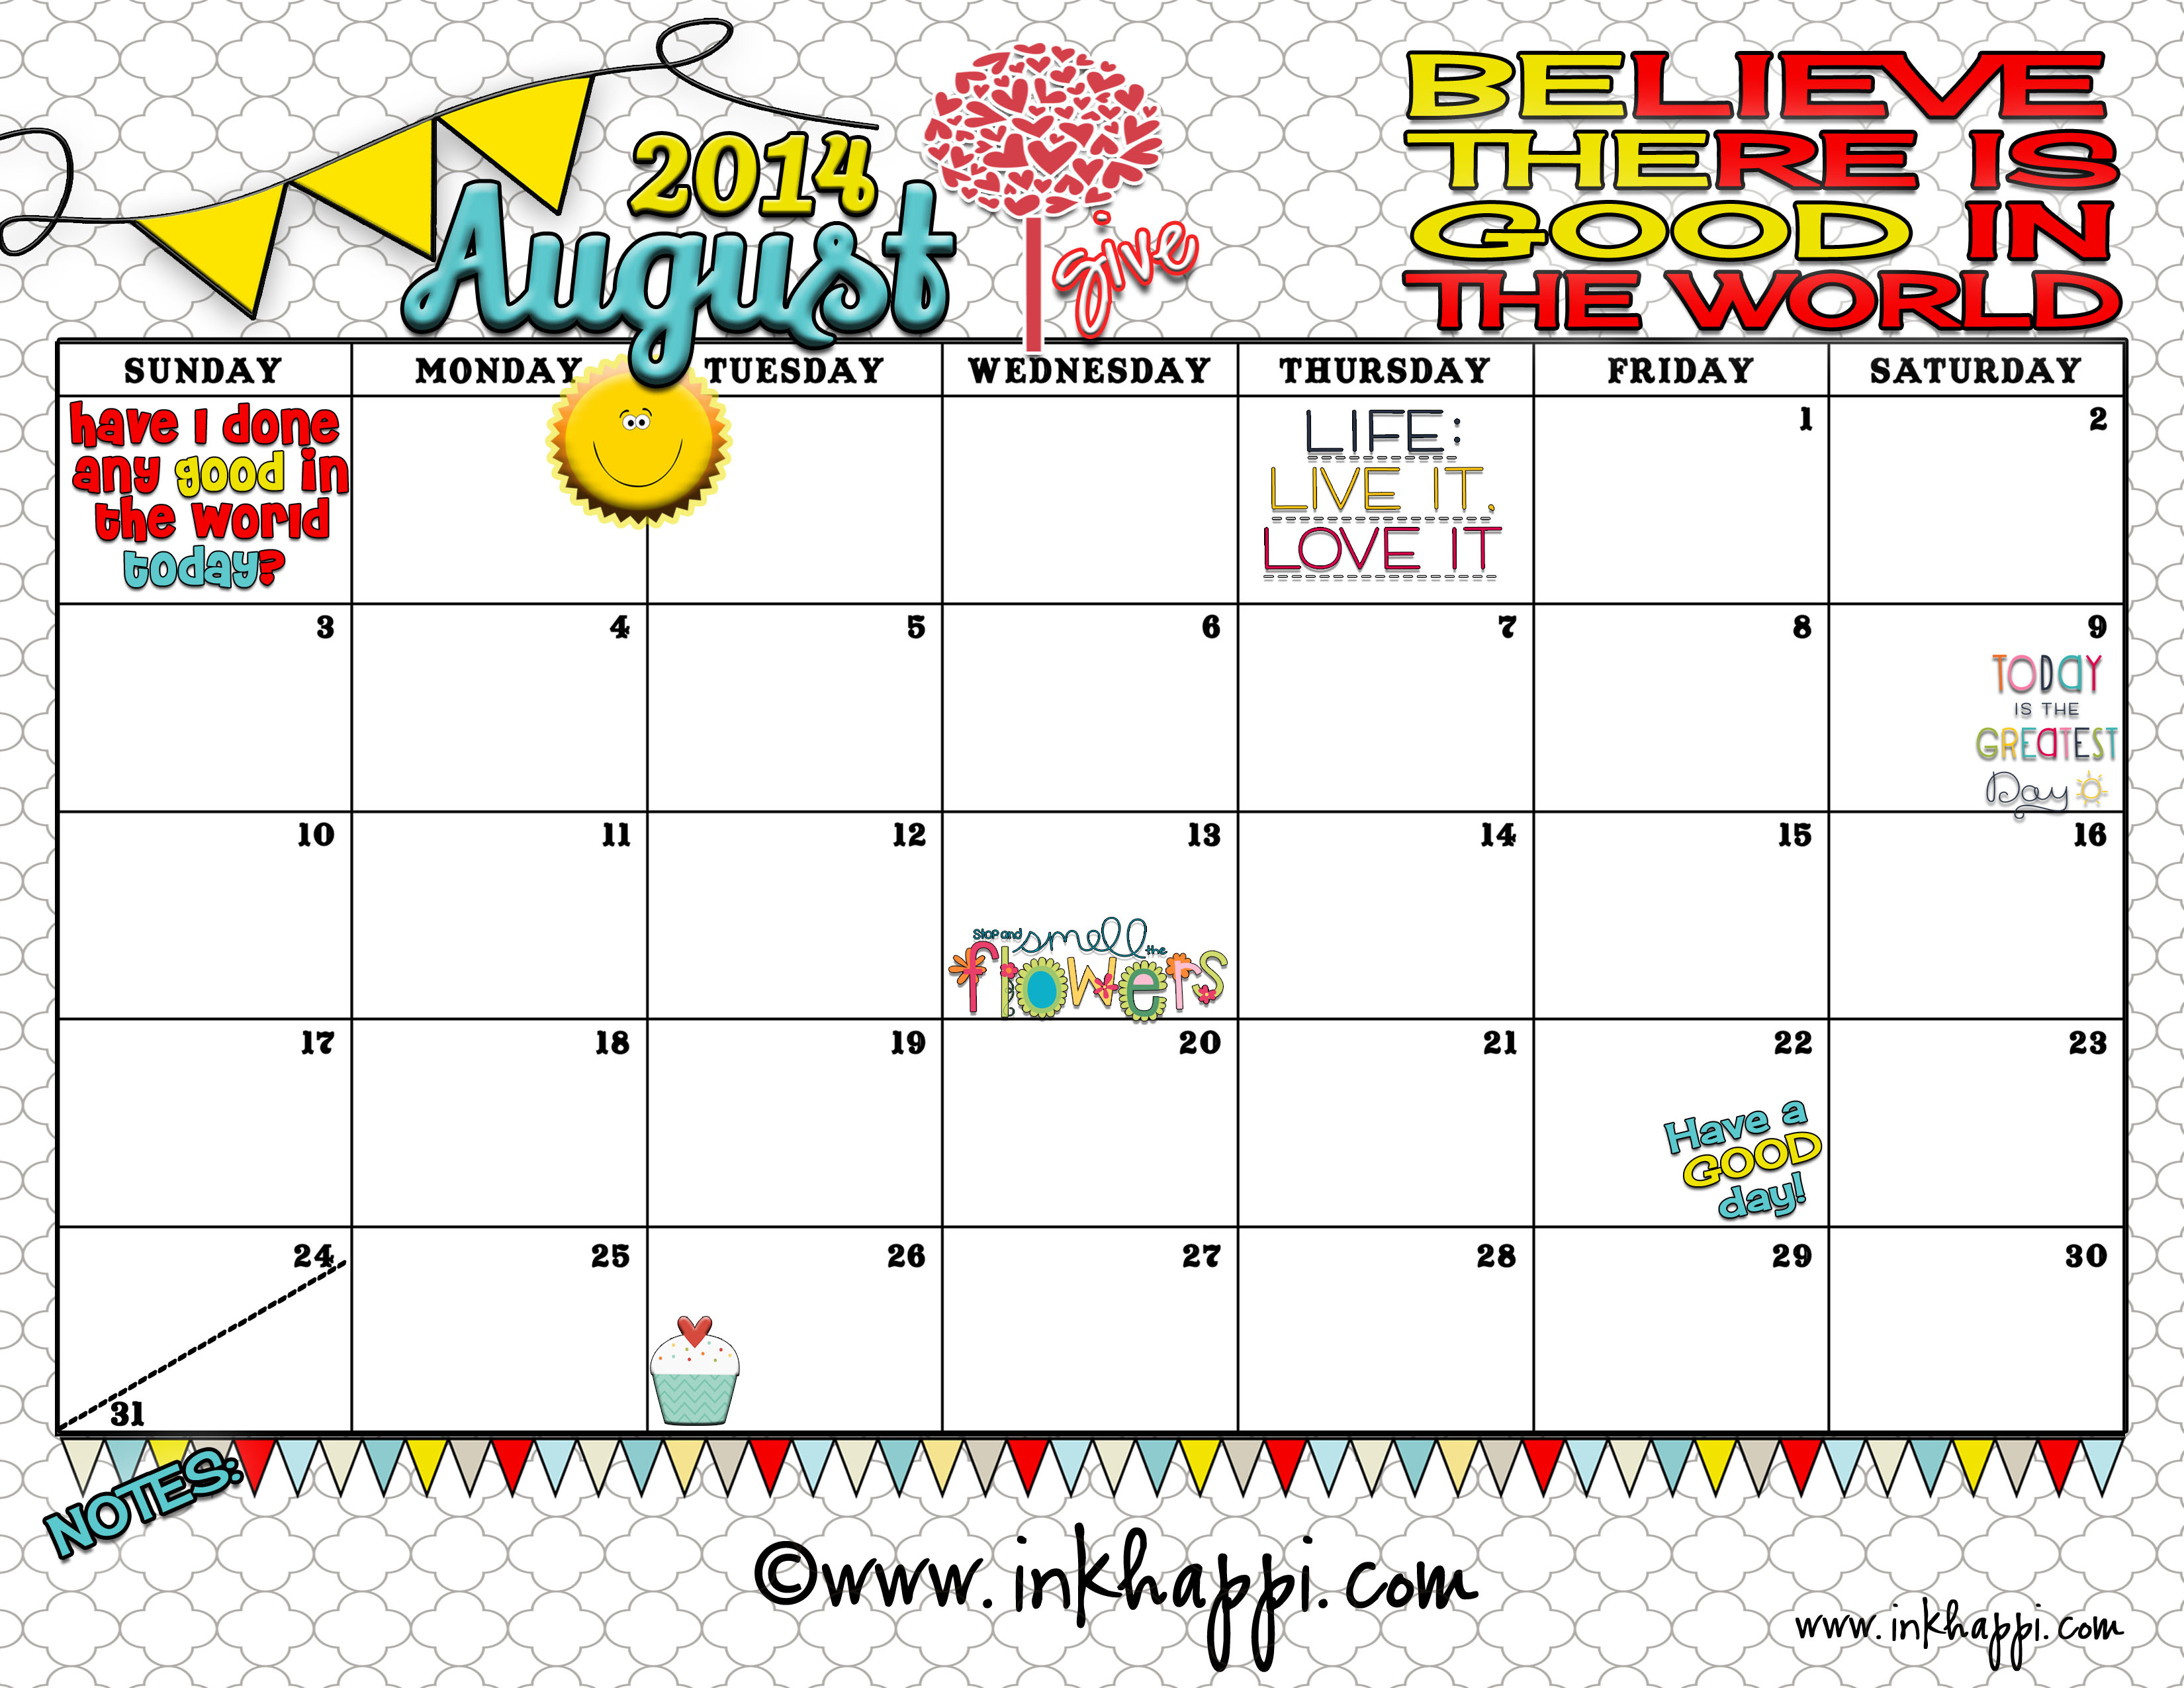 August Calendar 2014 : August calendar is here with a good message inkhappi